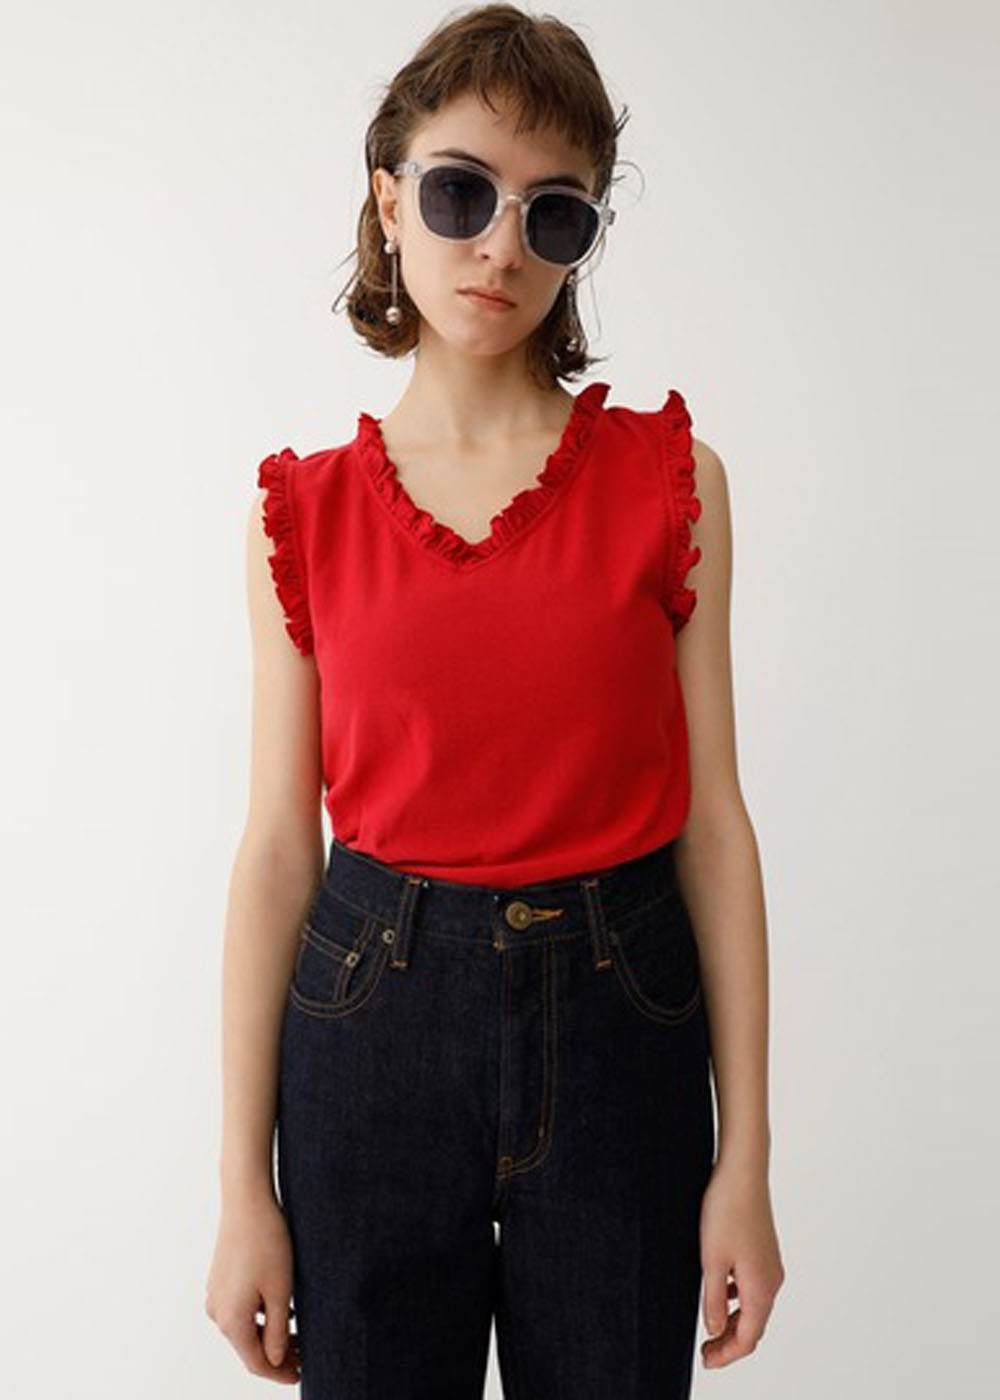 【最大70%OFF】FRILL NECK TANK TOP|RED|タンクトップ|MOUSSY